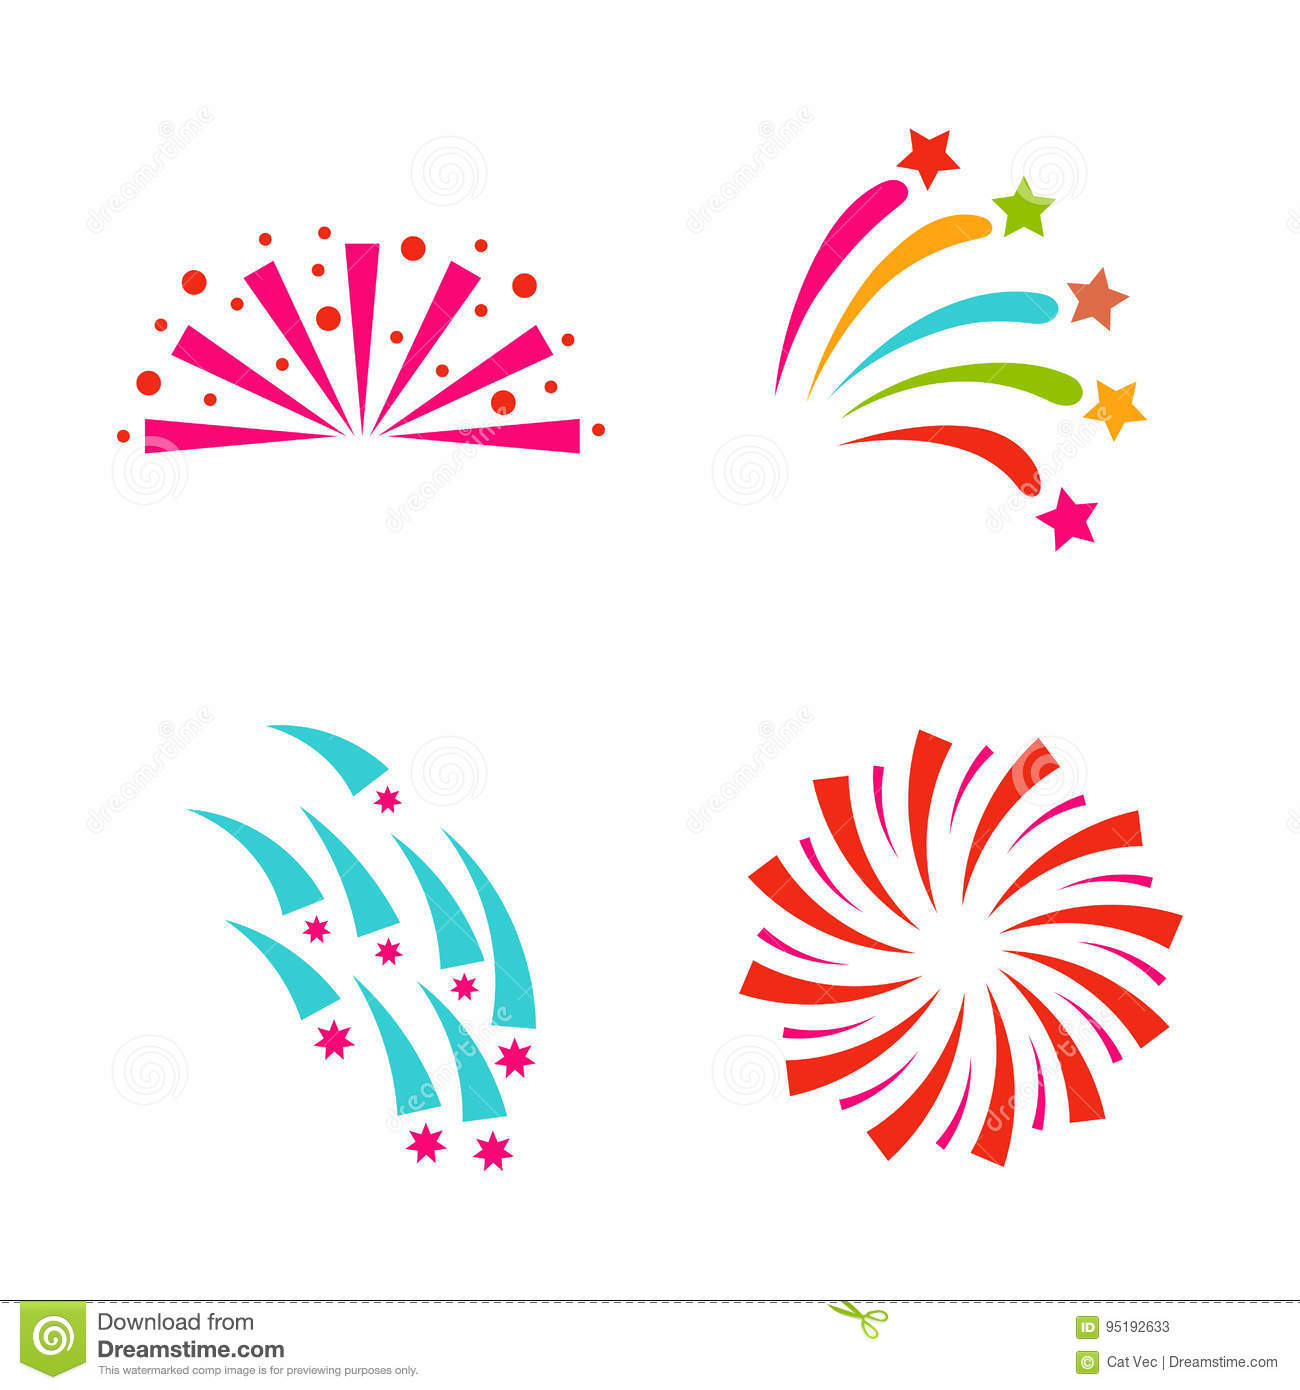 firework vector illustration celebration holiday event night explosion light festive party